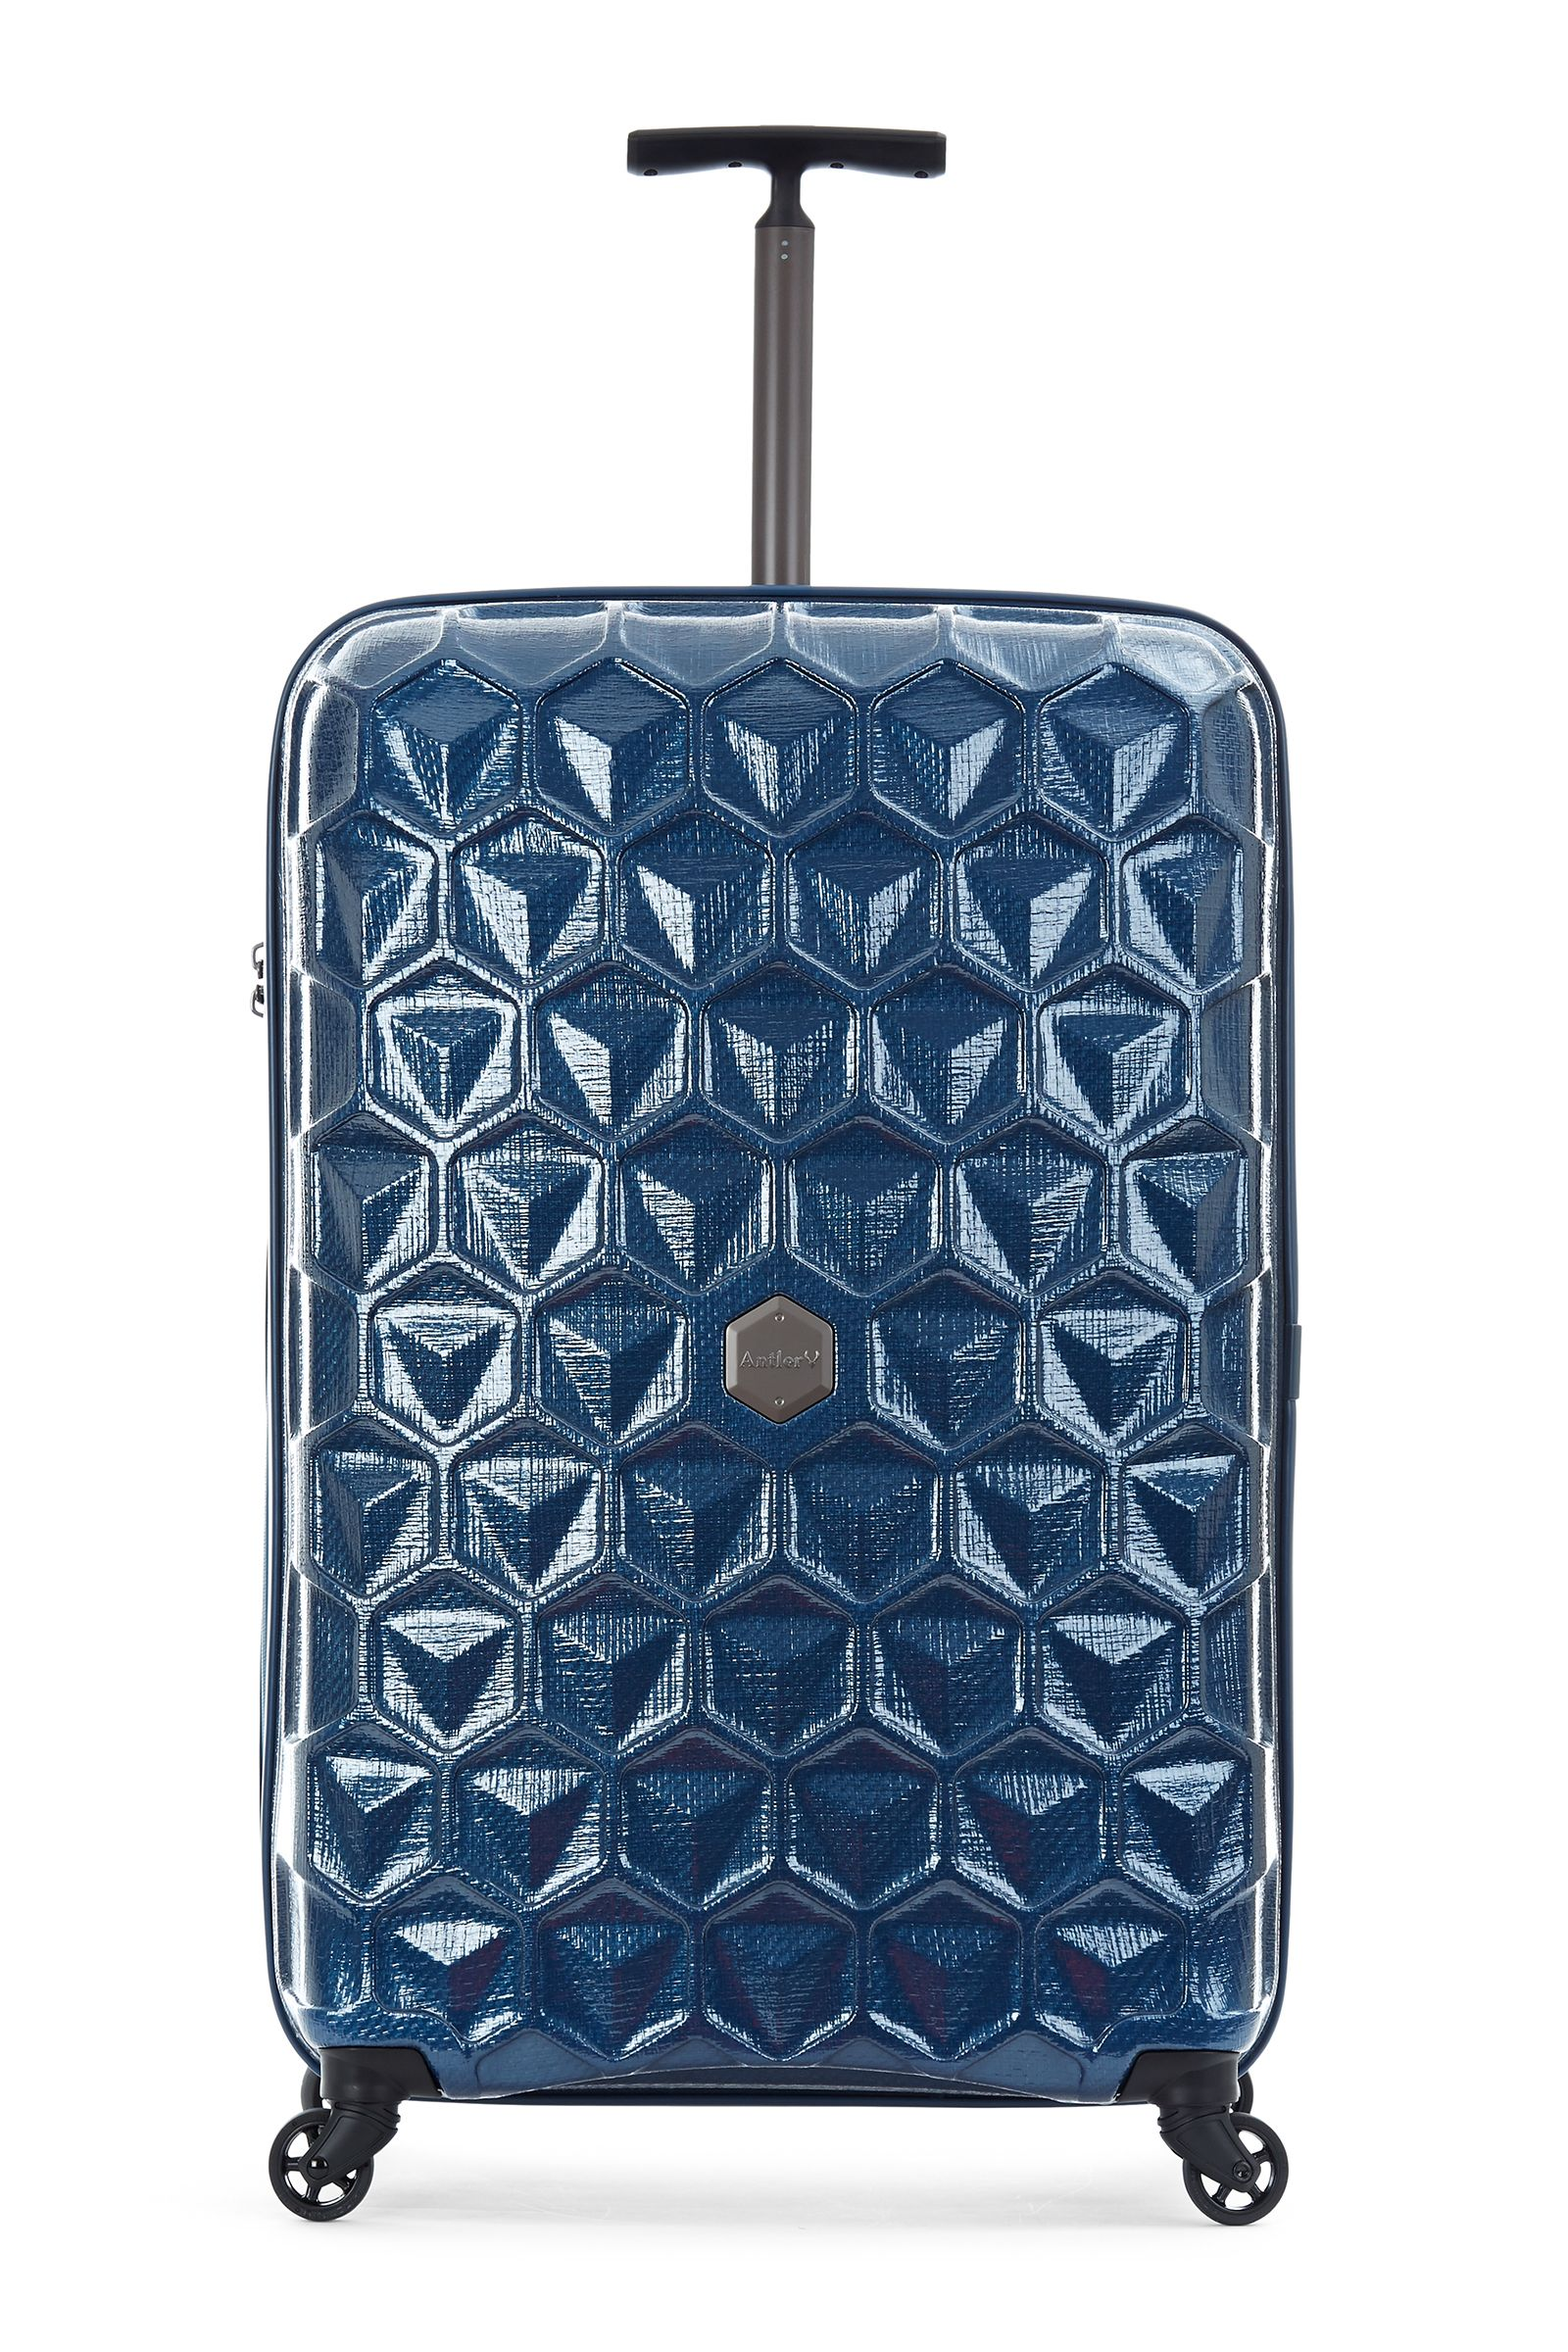 Antler Atom blue 4 wheel hard large suitcase Blue